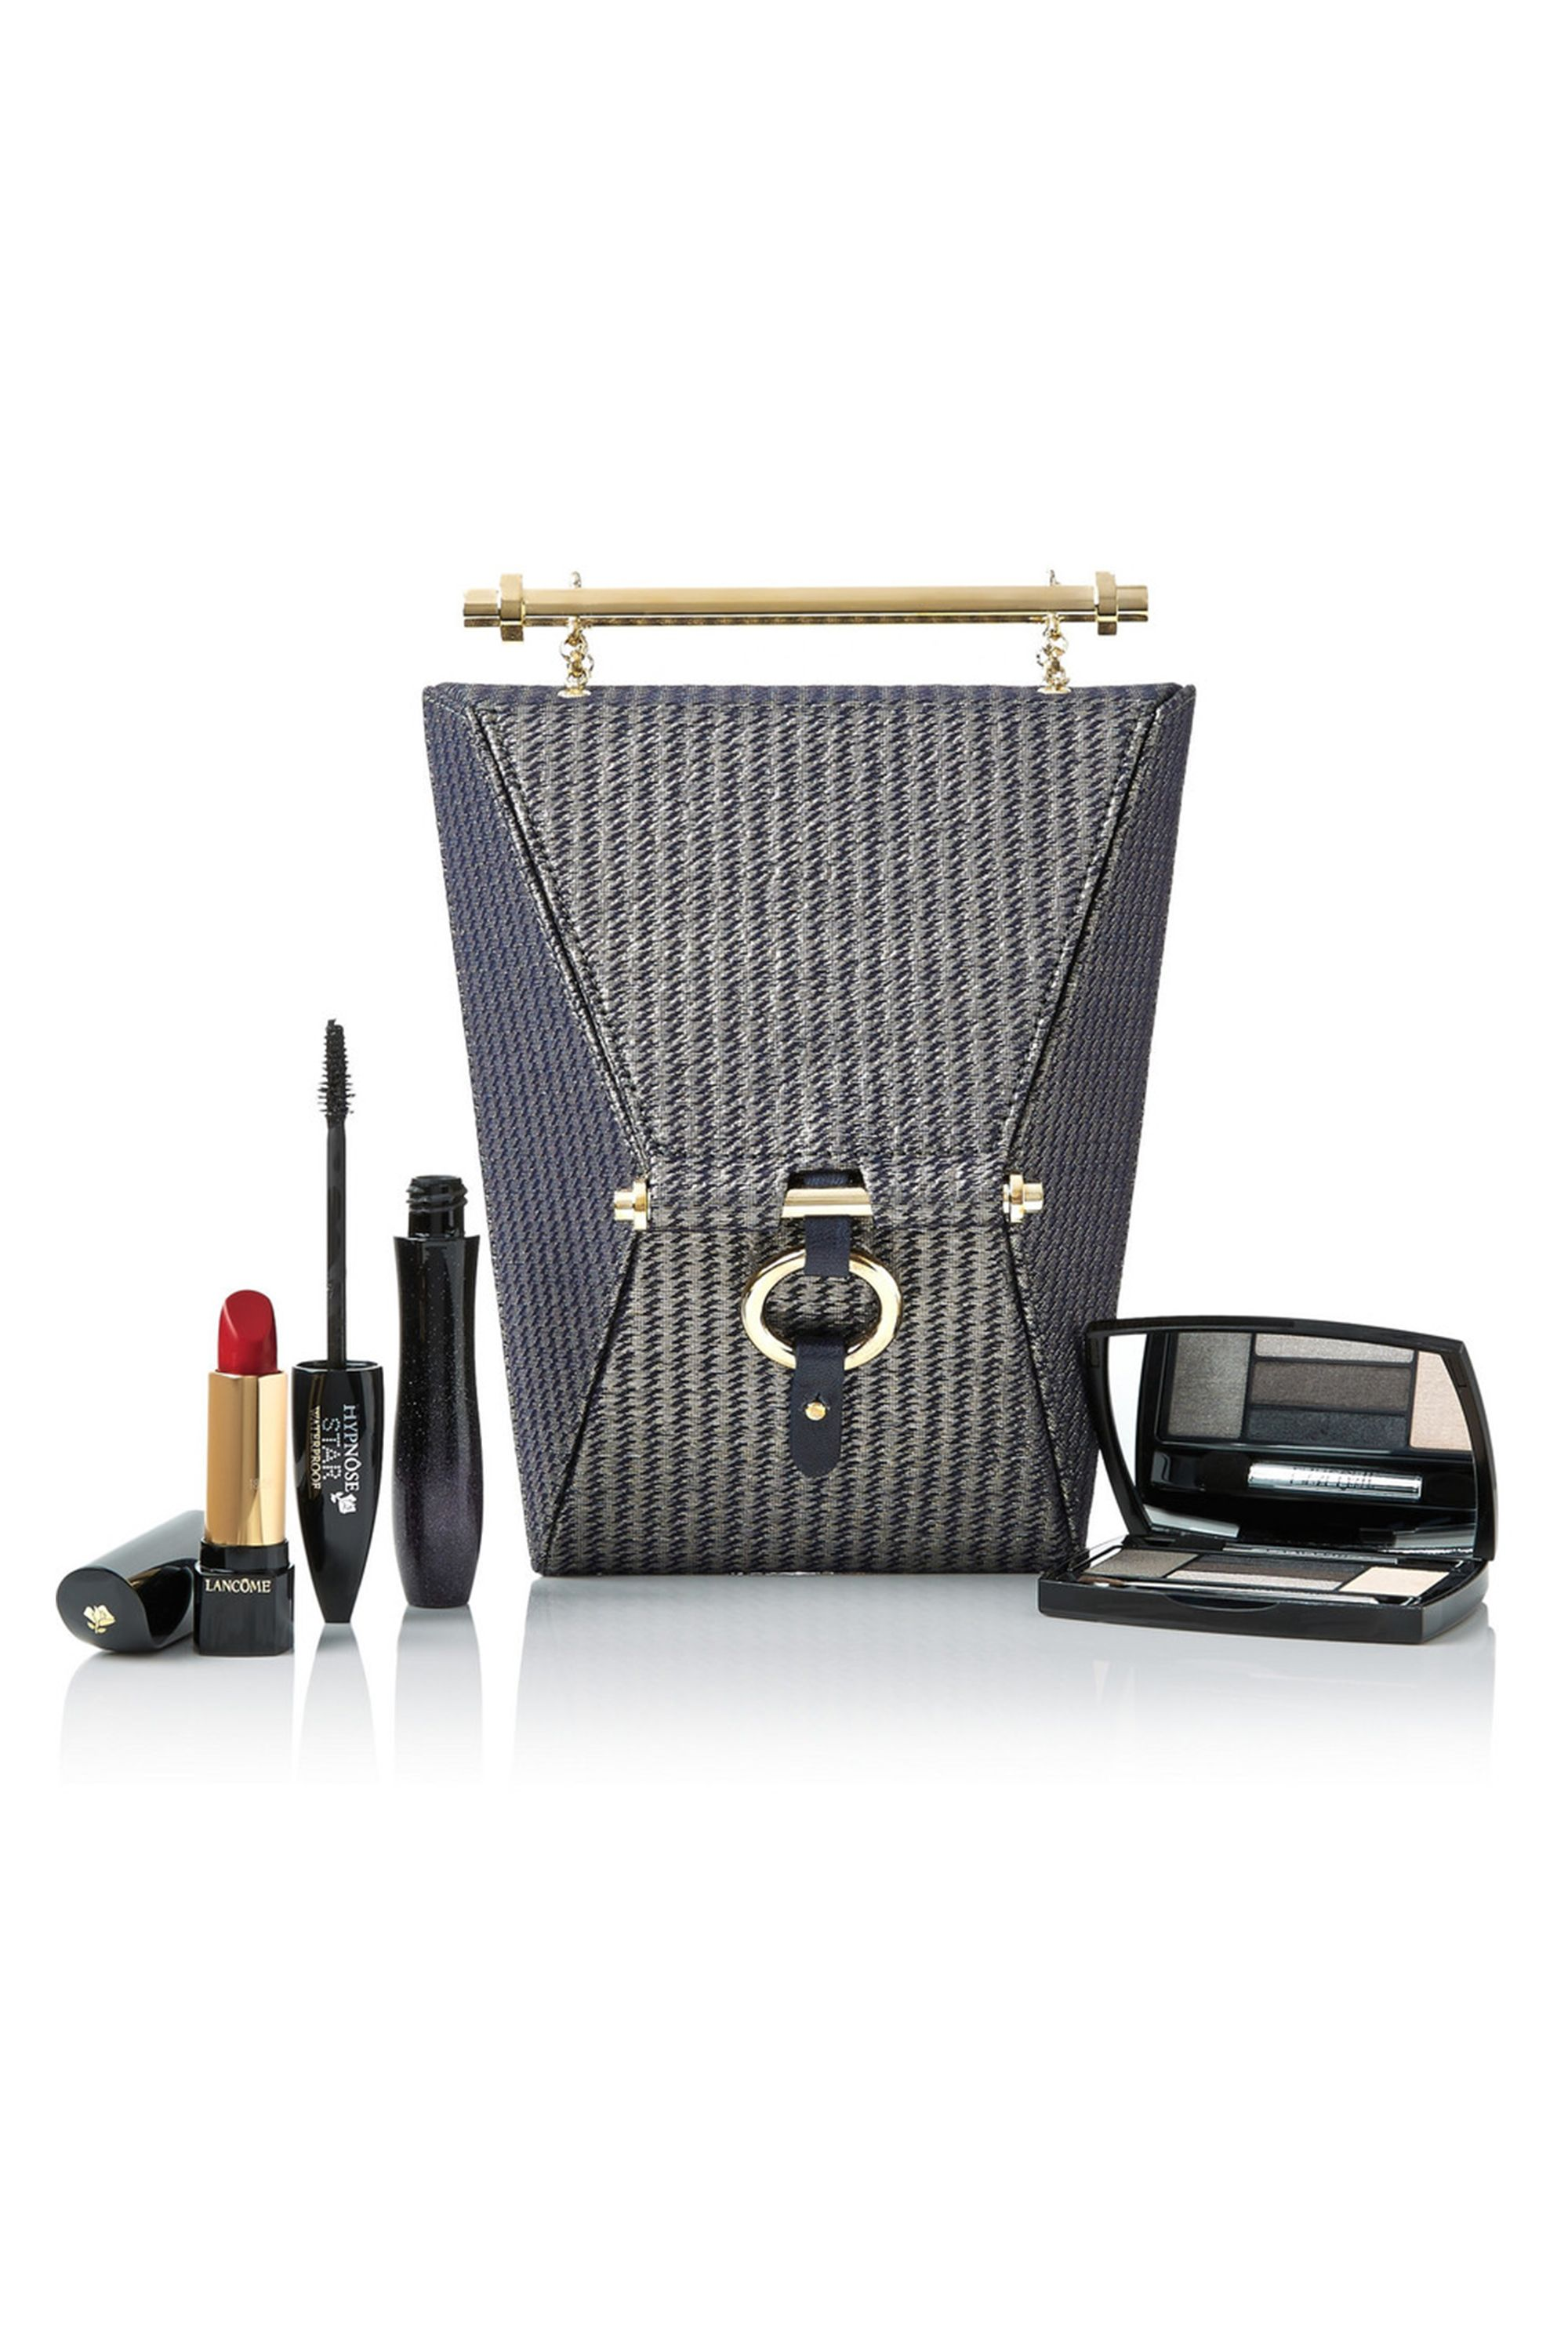 33 Best Makeup Gift Sets for Women 2017 - Holiday Beauty Gift Sets ...